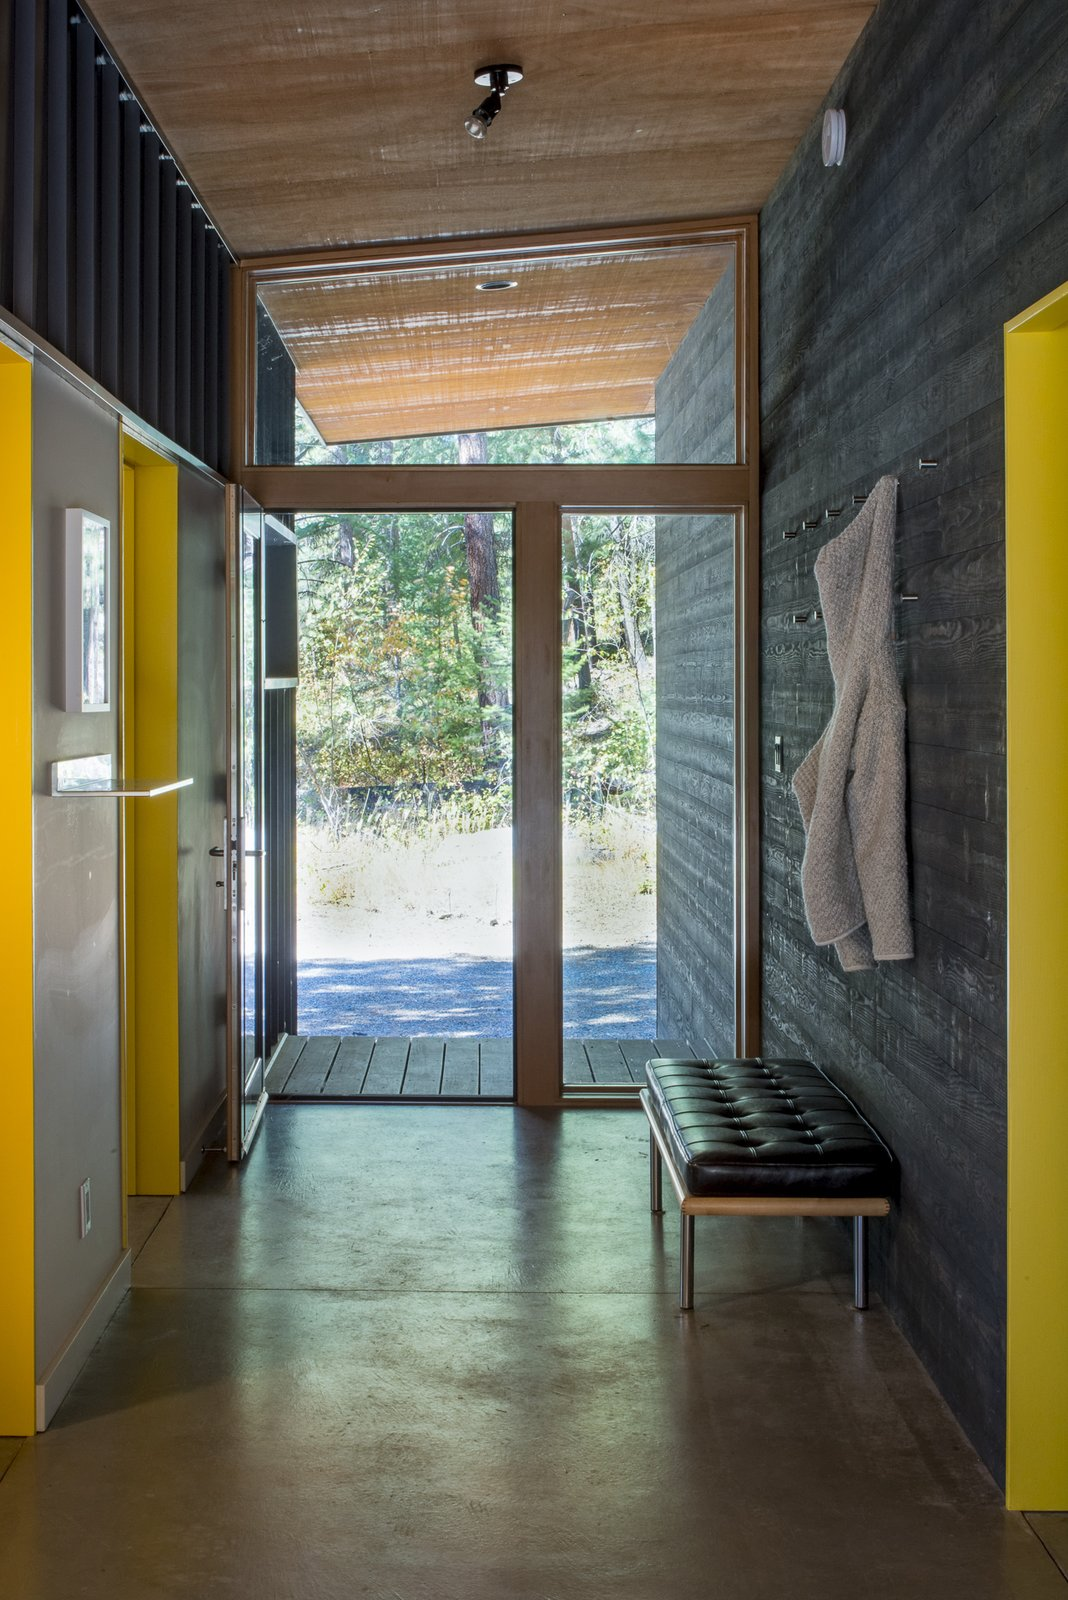 Photo 10 of 10 in A Lean Cabin in Washington Dismantles the Indoor/Outdoor Divide